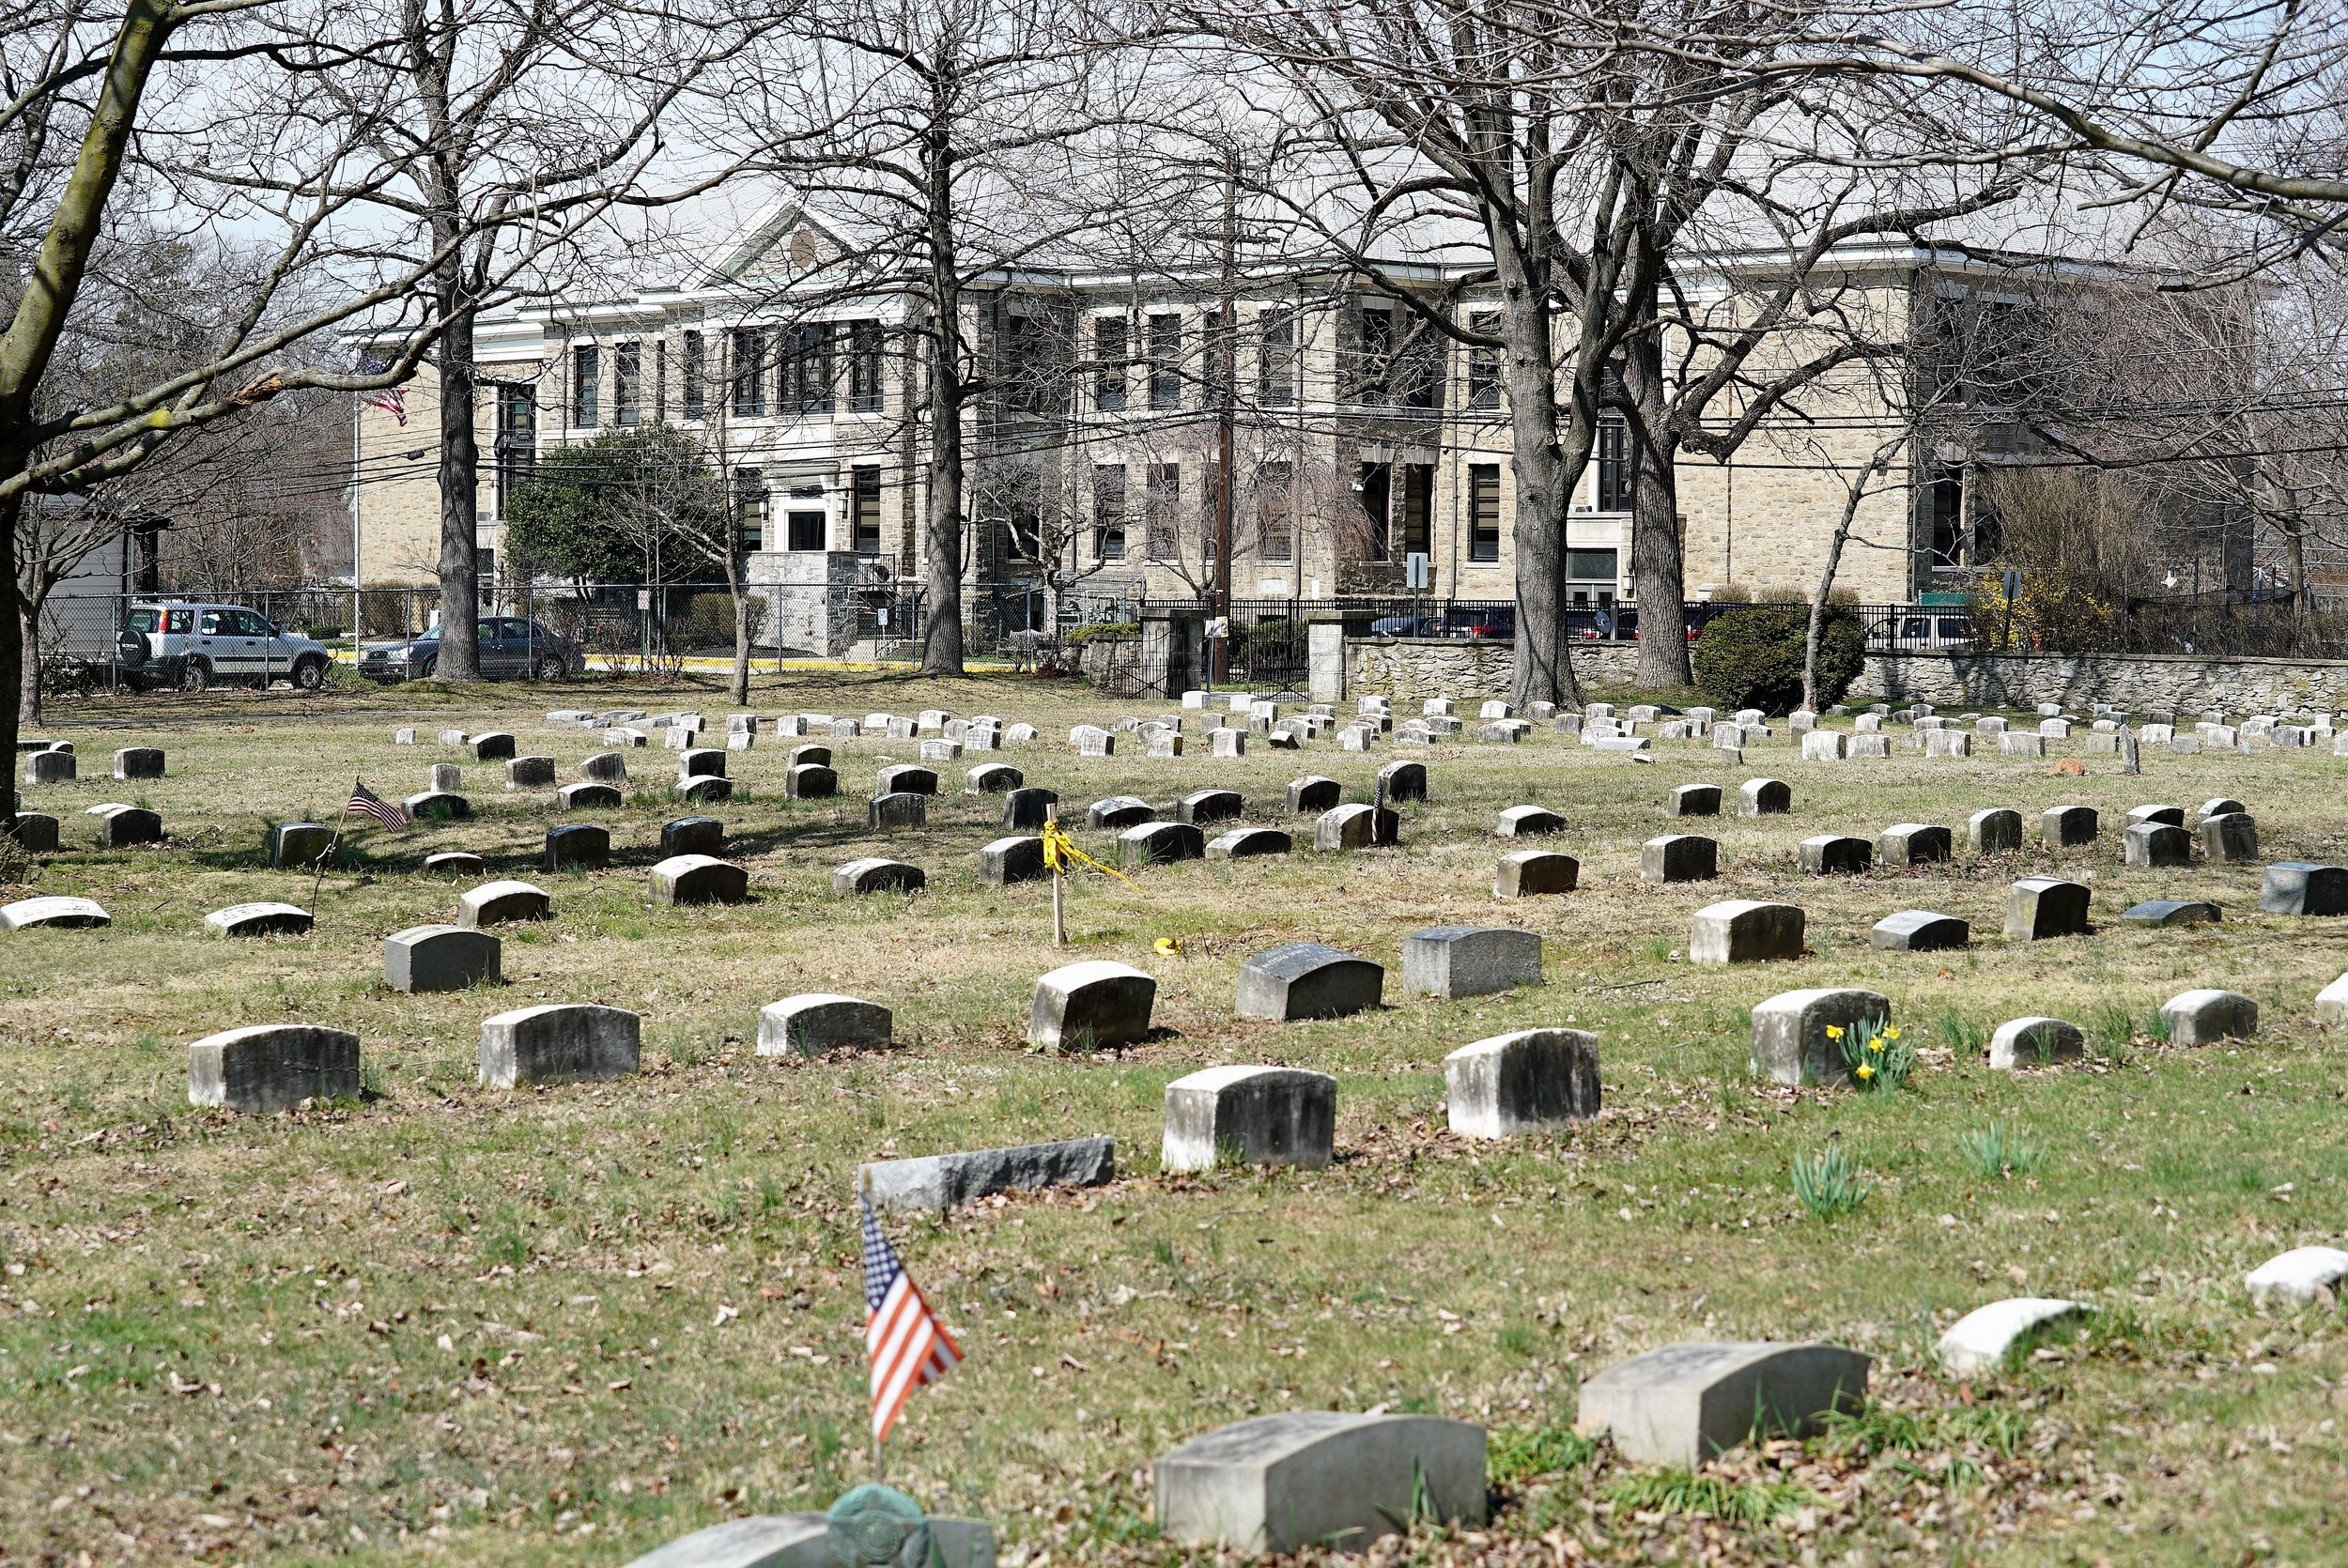 Old Haverford Friends Meeting House Cemetery. Havertown, Pennsylvania.